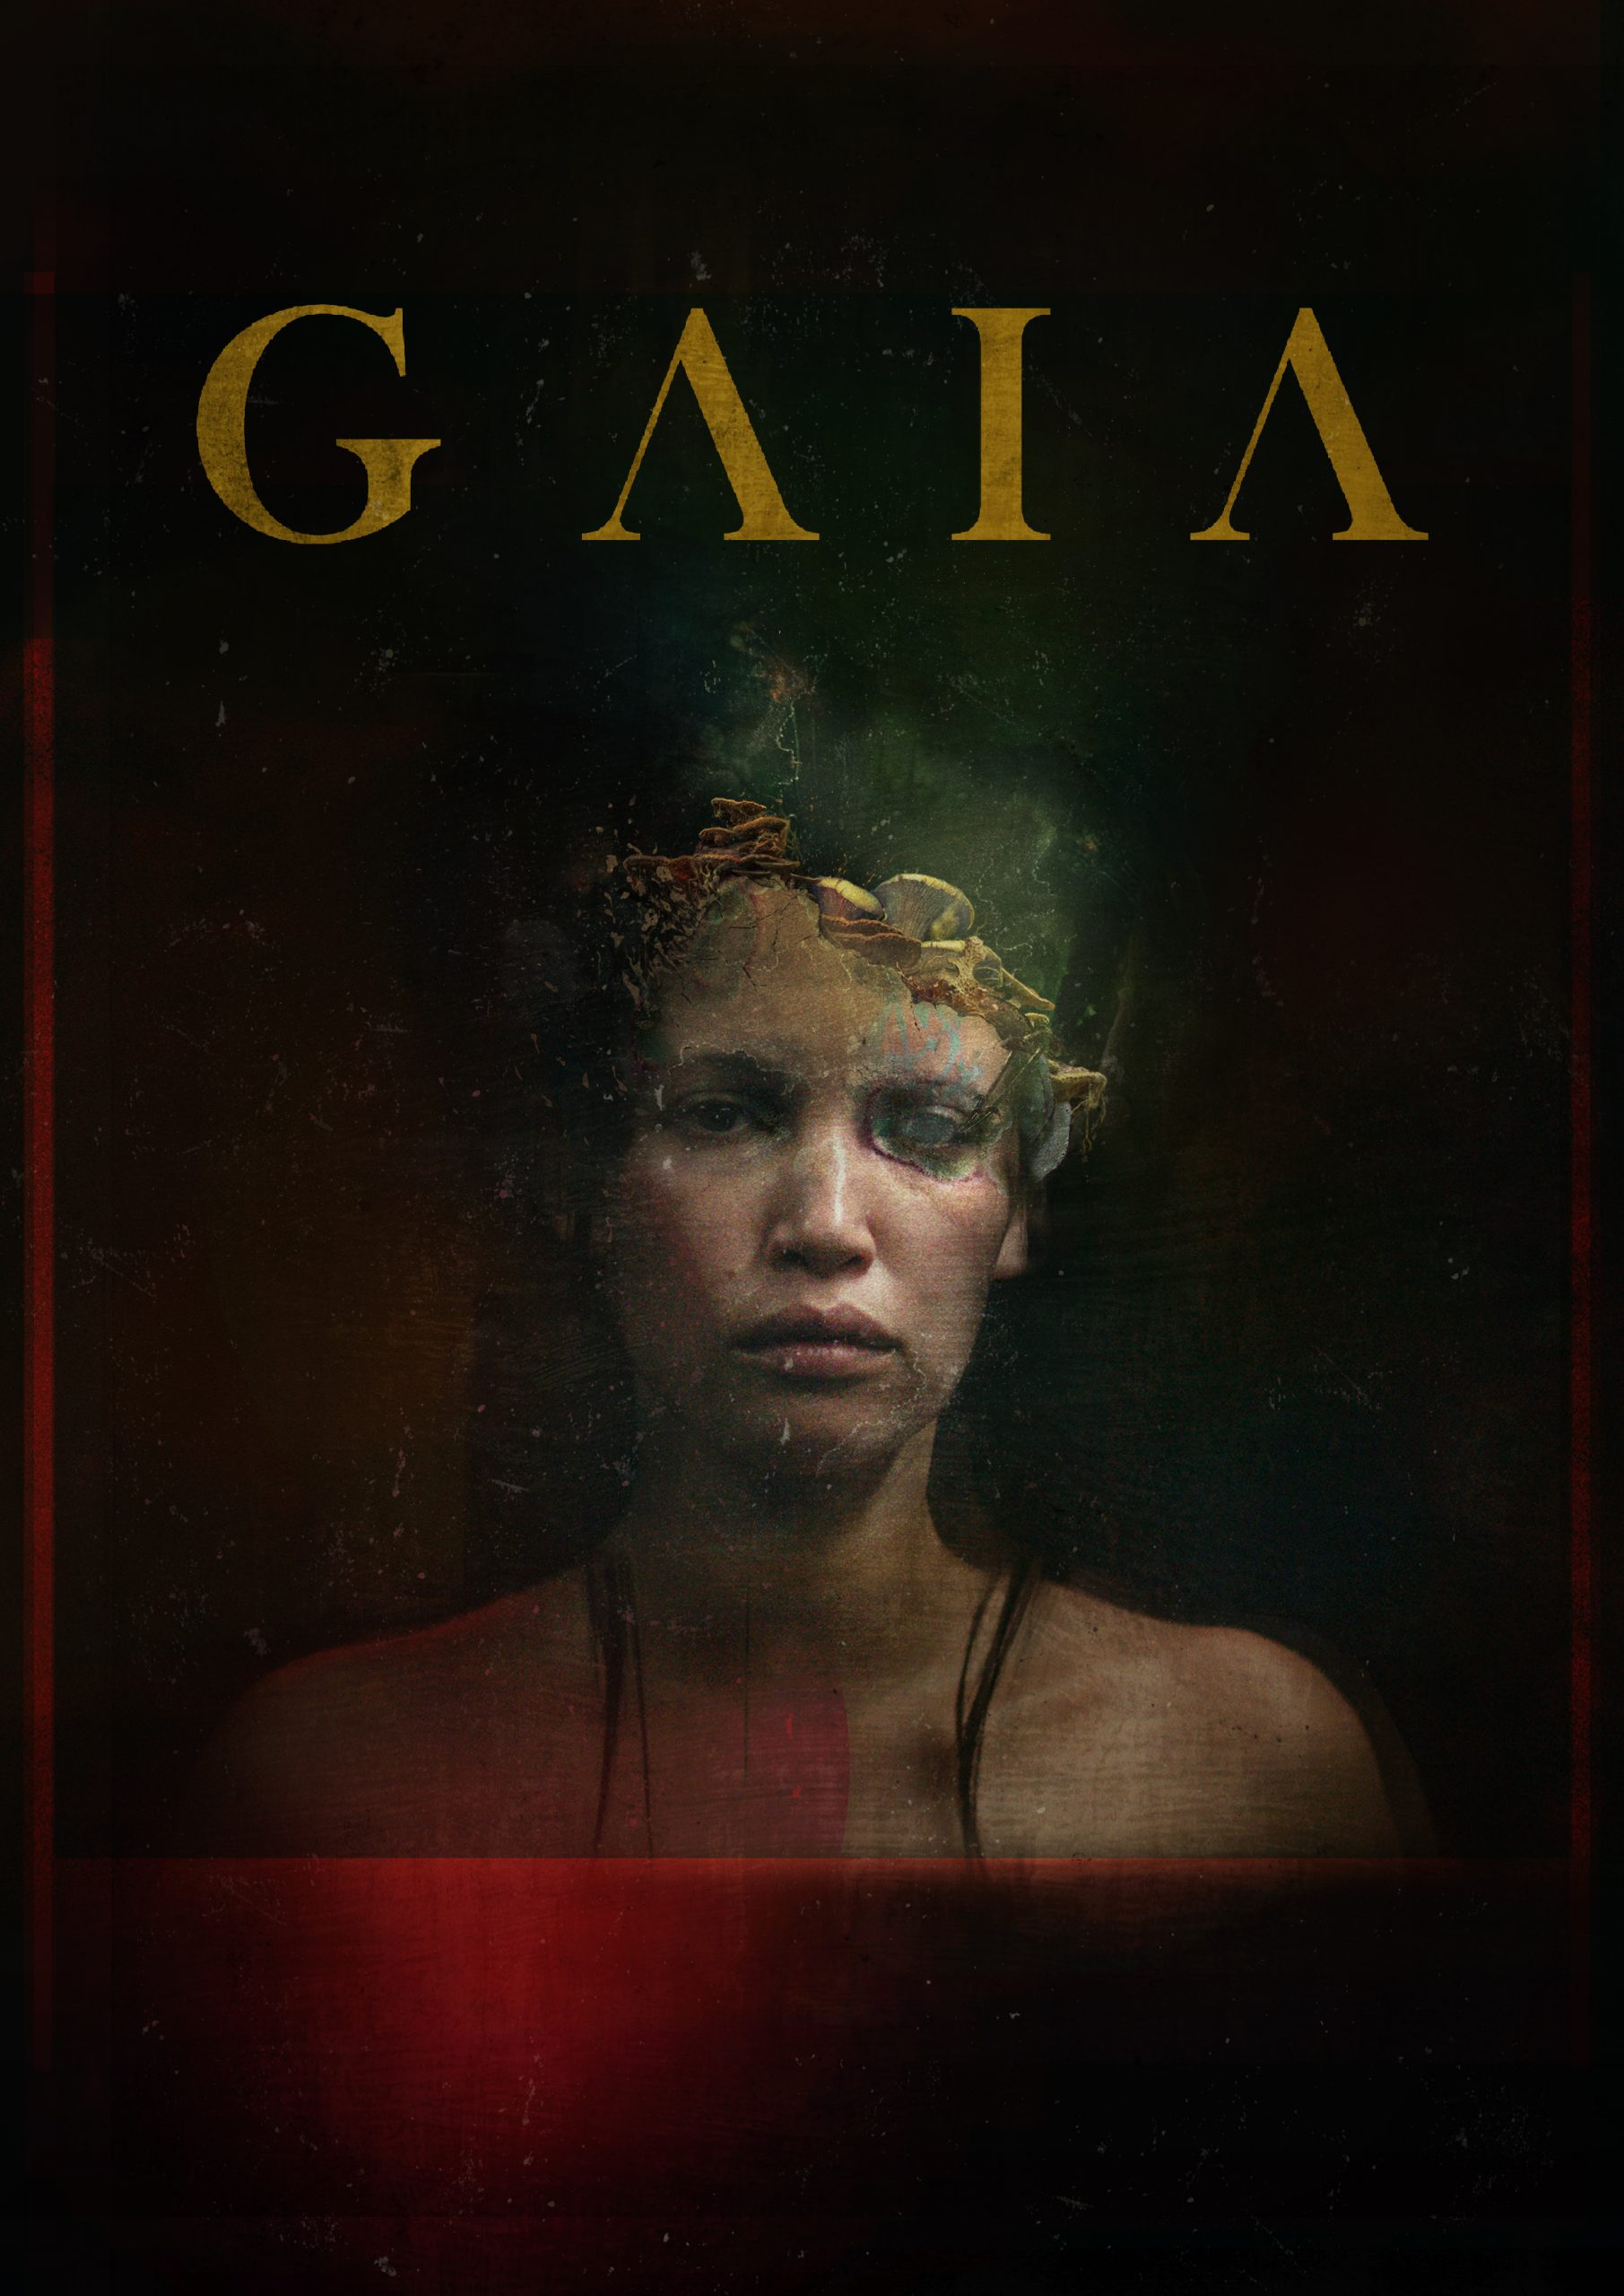 Gaia poster movie trailer (1)